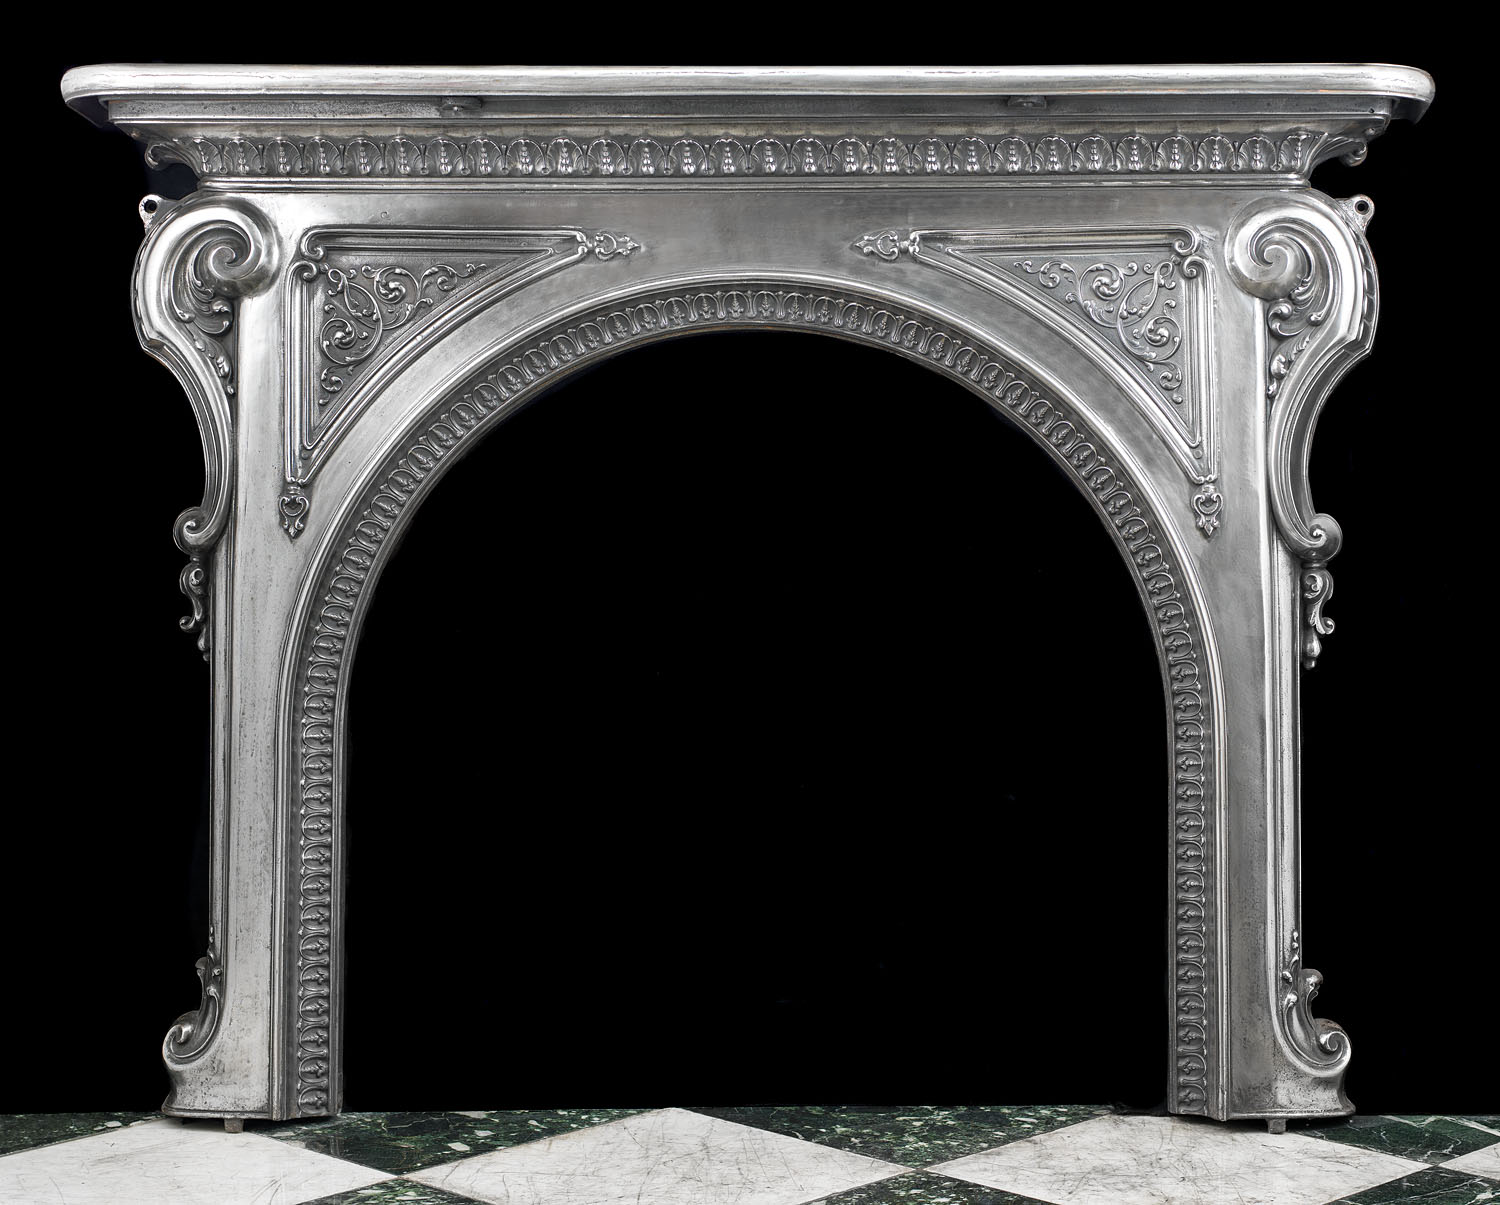 A cast iron Antique Rococo style Fireplace mantel